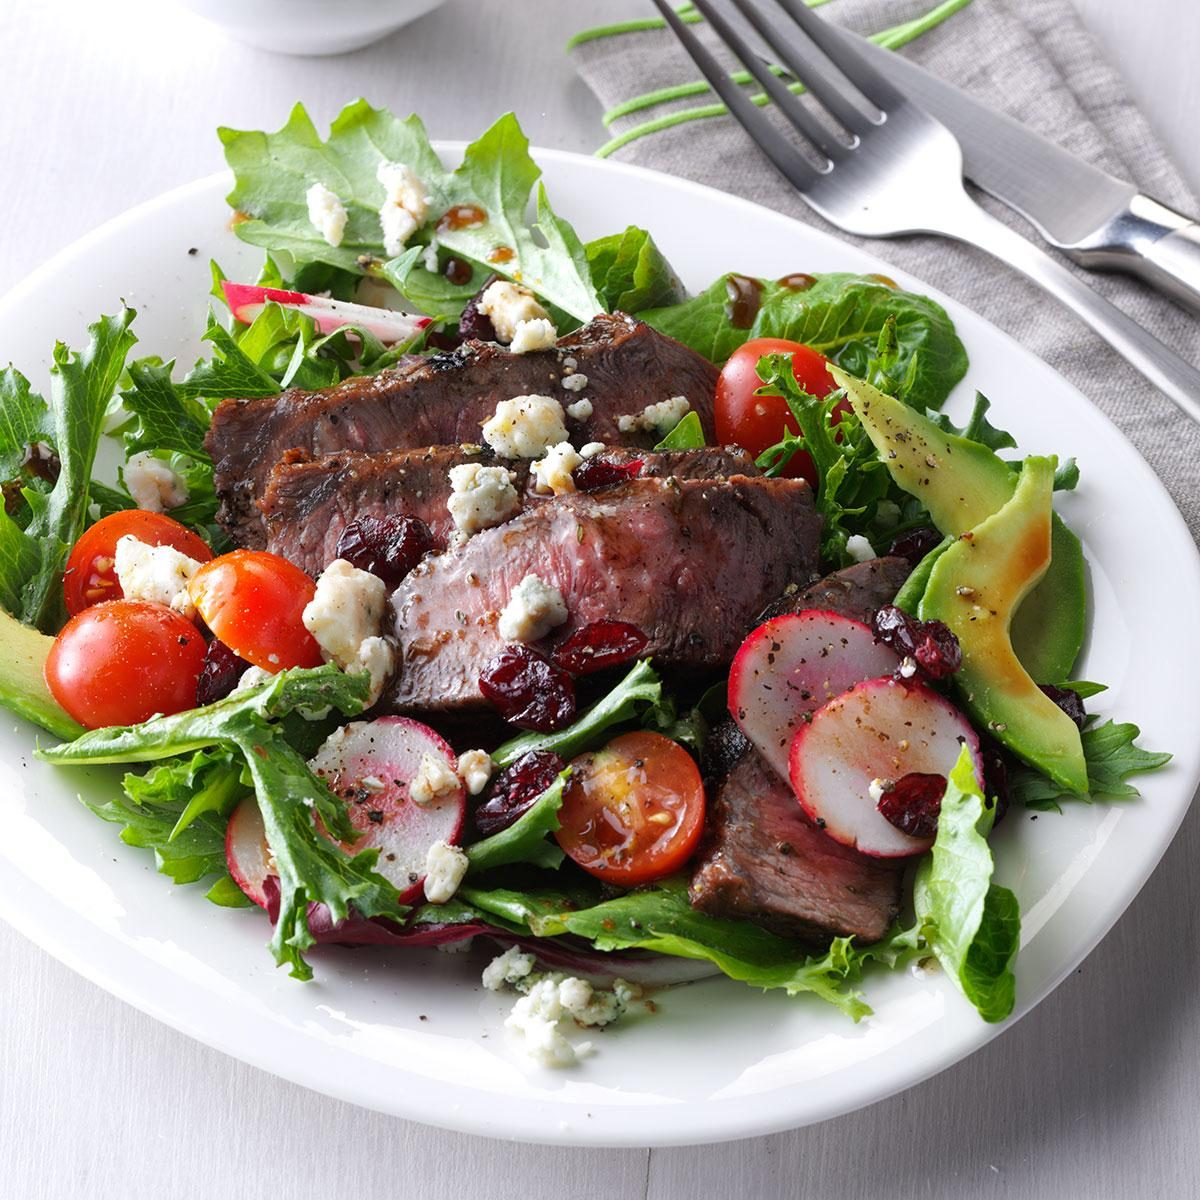 Inspired by: Texas Roadhouse's Steakhouse Filet Salad